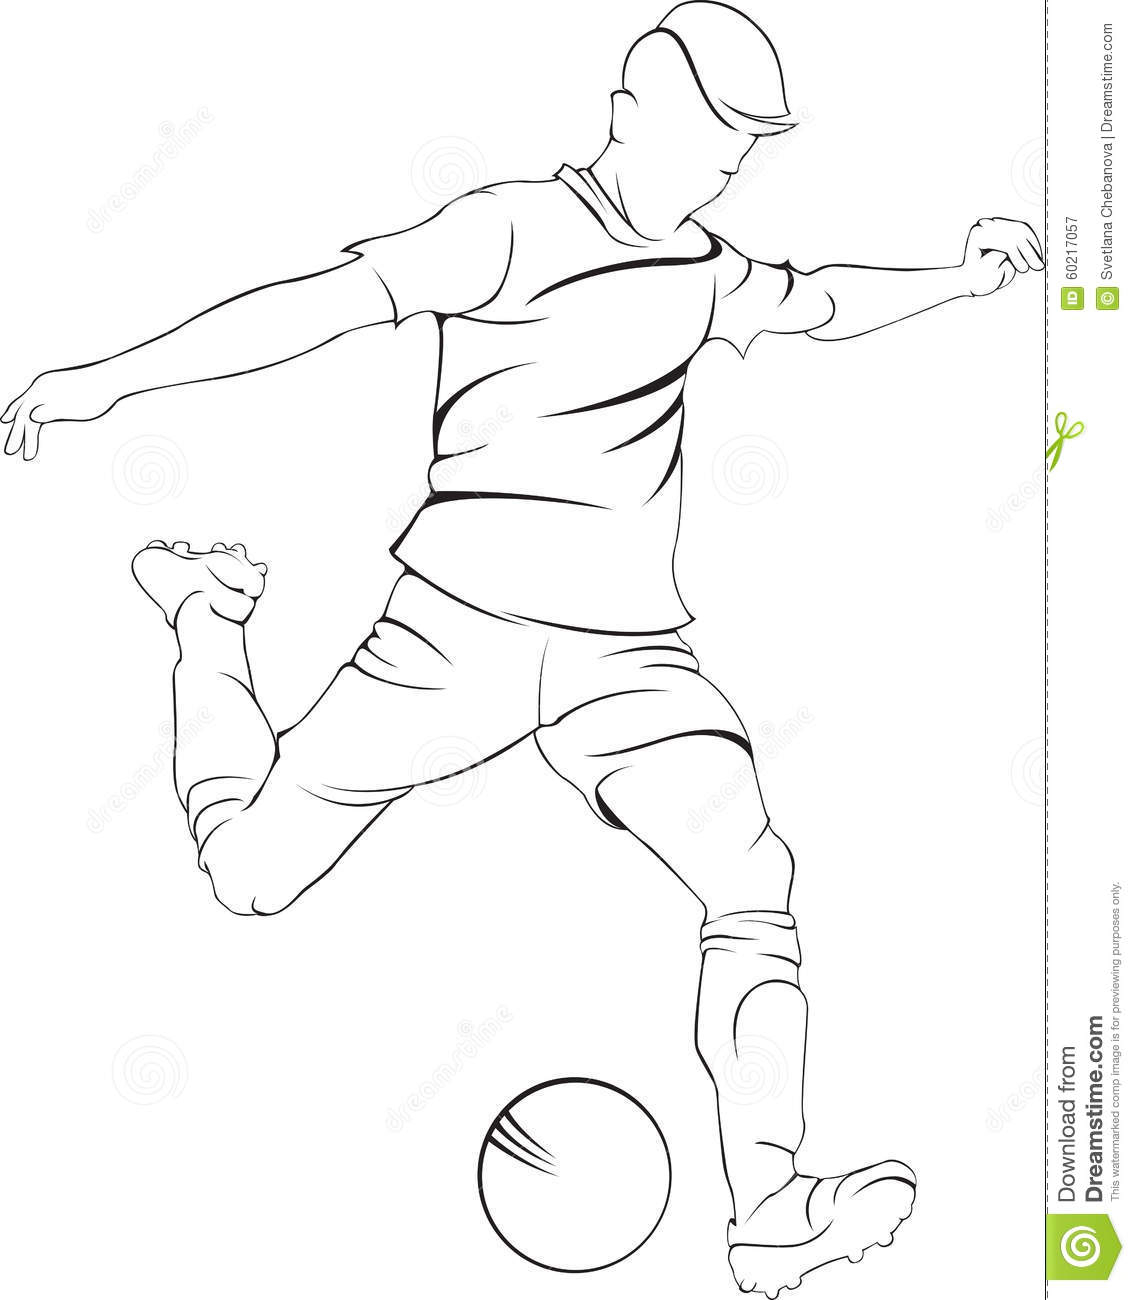 draw a football player football player drawing clipartsco player football a draw